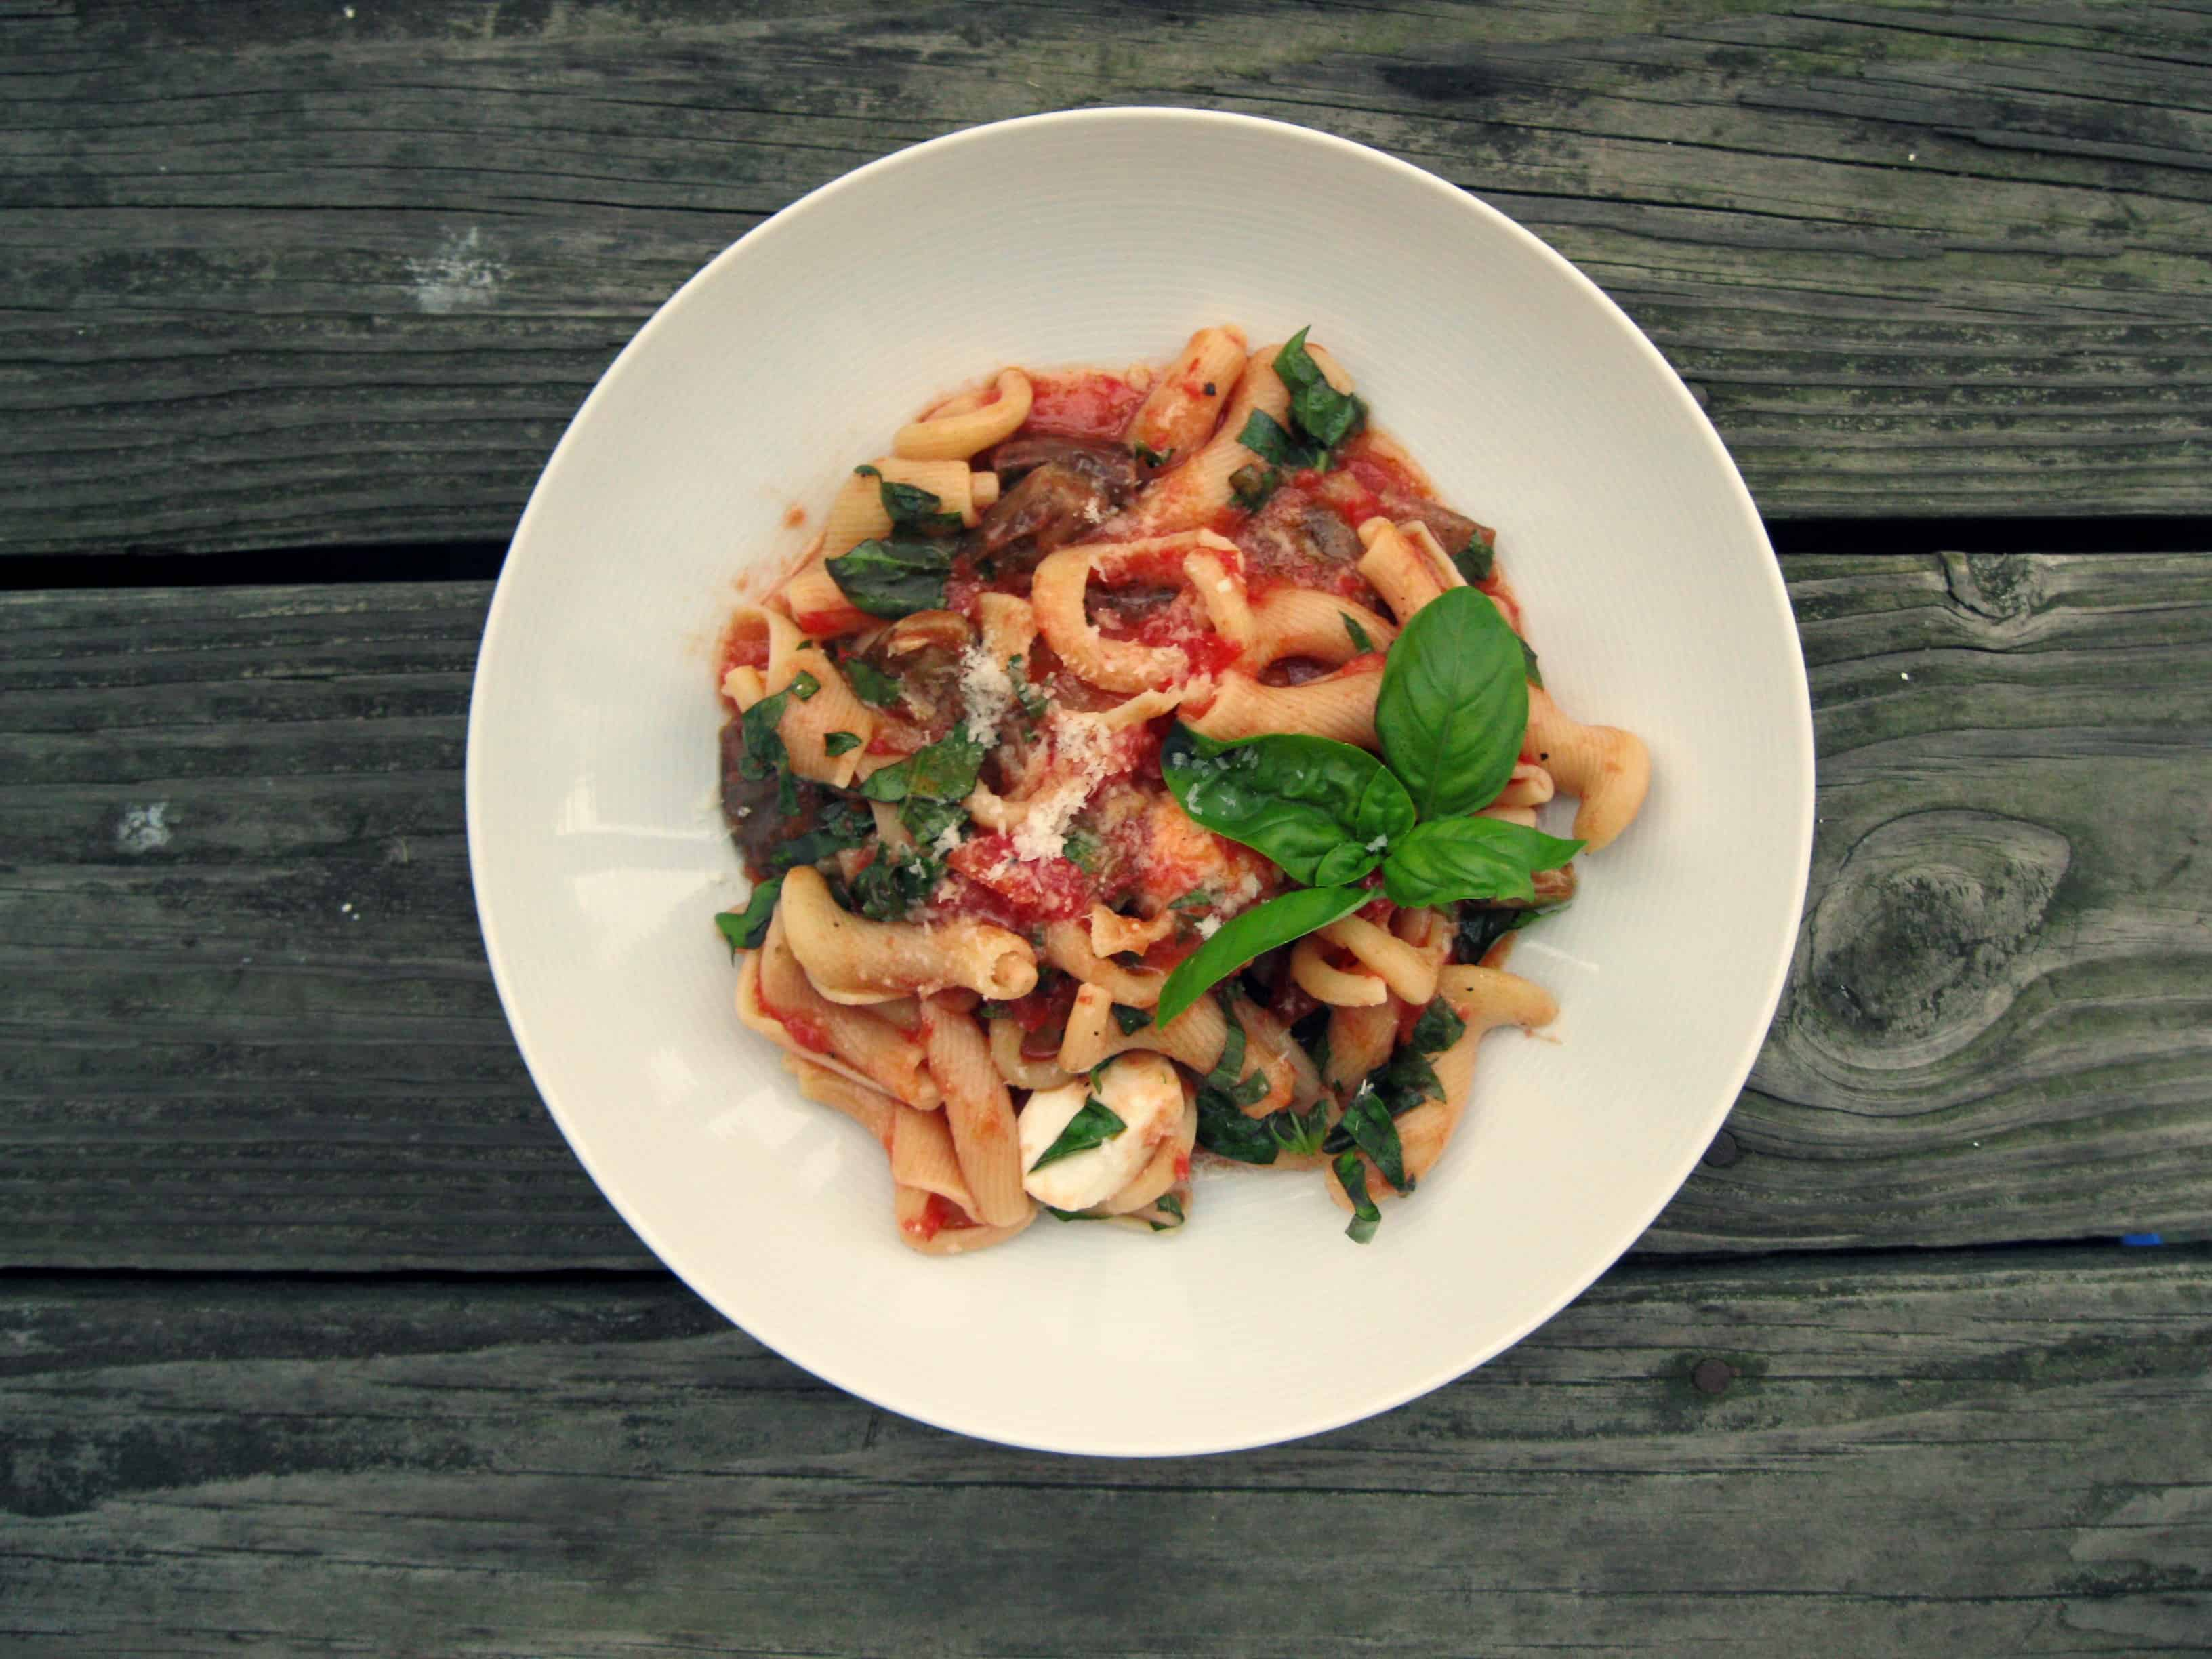 Top view of a bowl of pasta with eggplant and tomato.